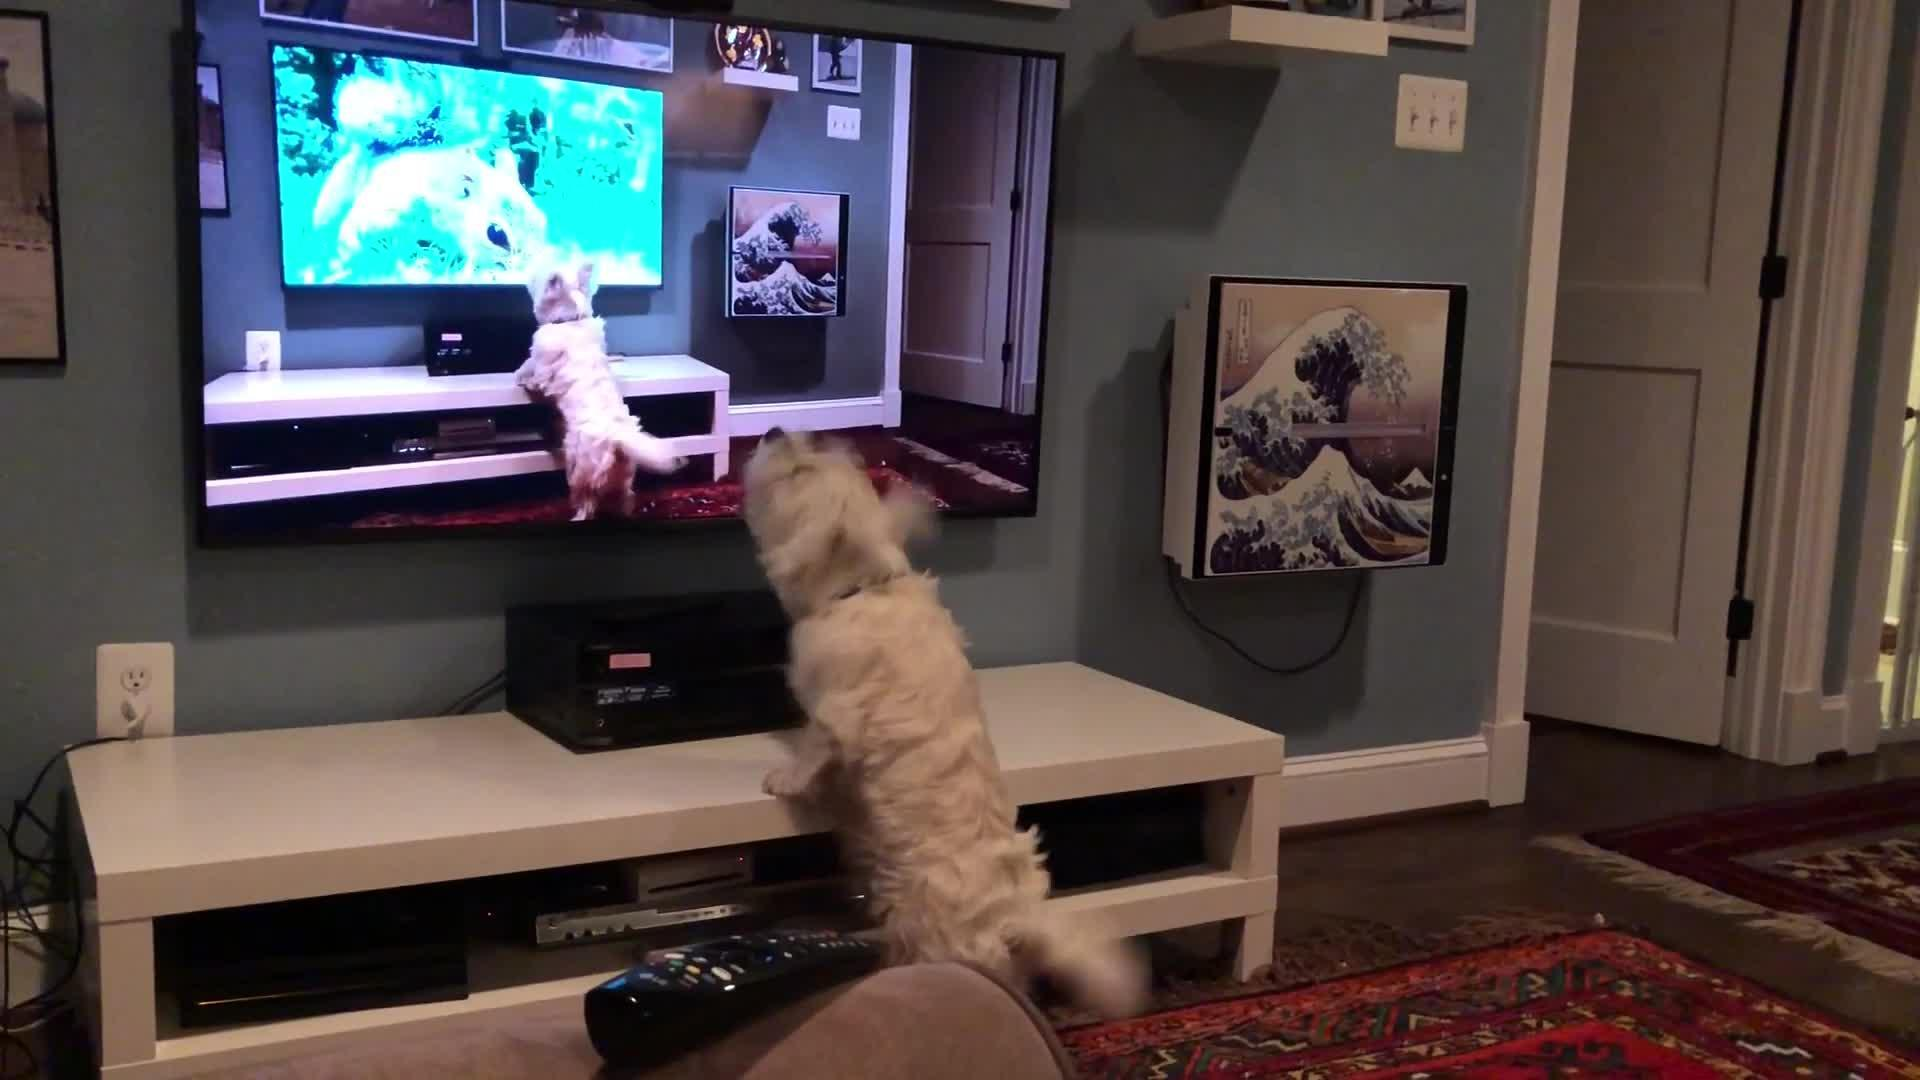 Dog Barks Seeing A Video Of Herself Barking On Tv Jukin Media Inc